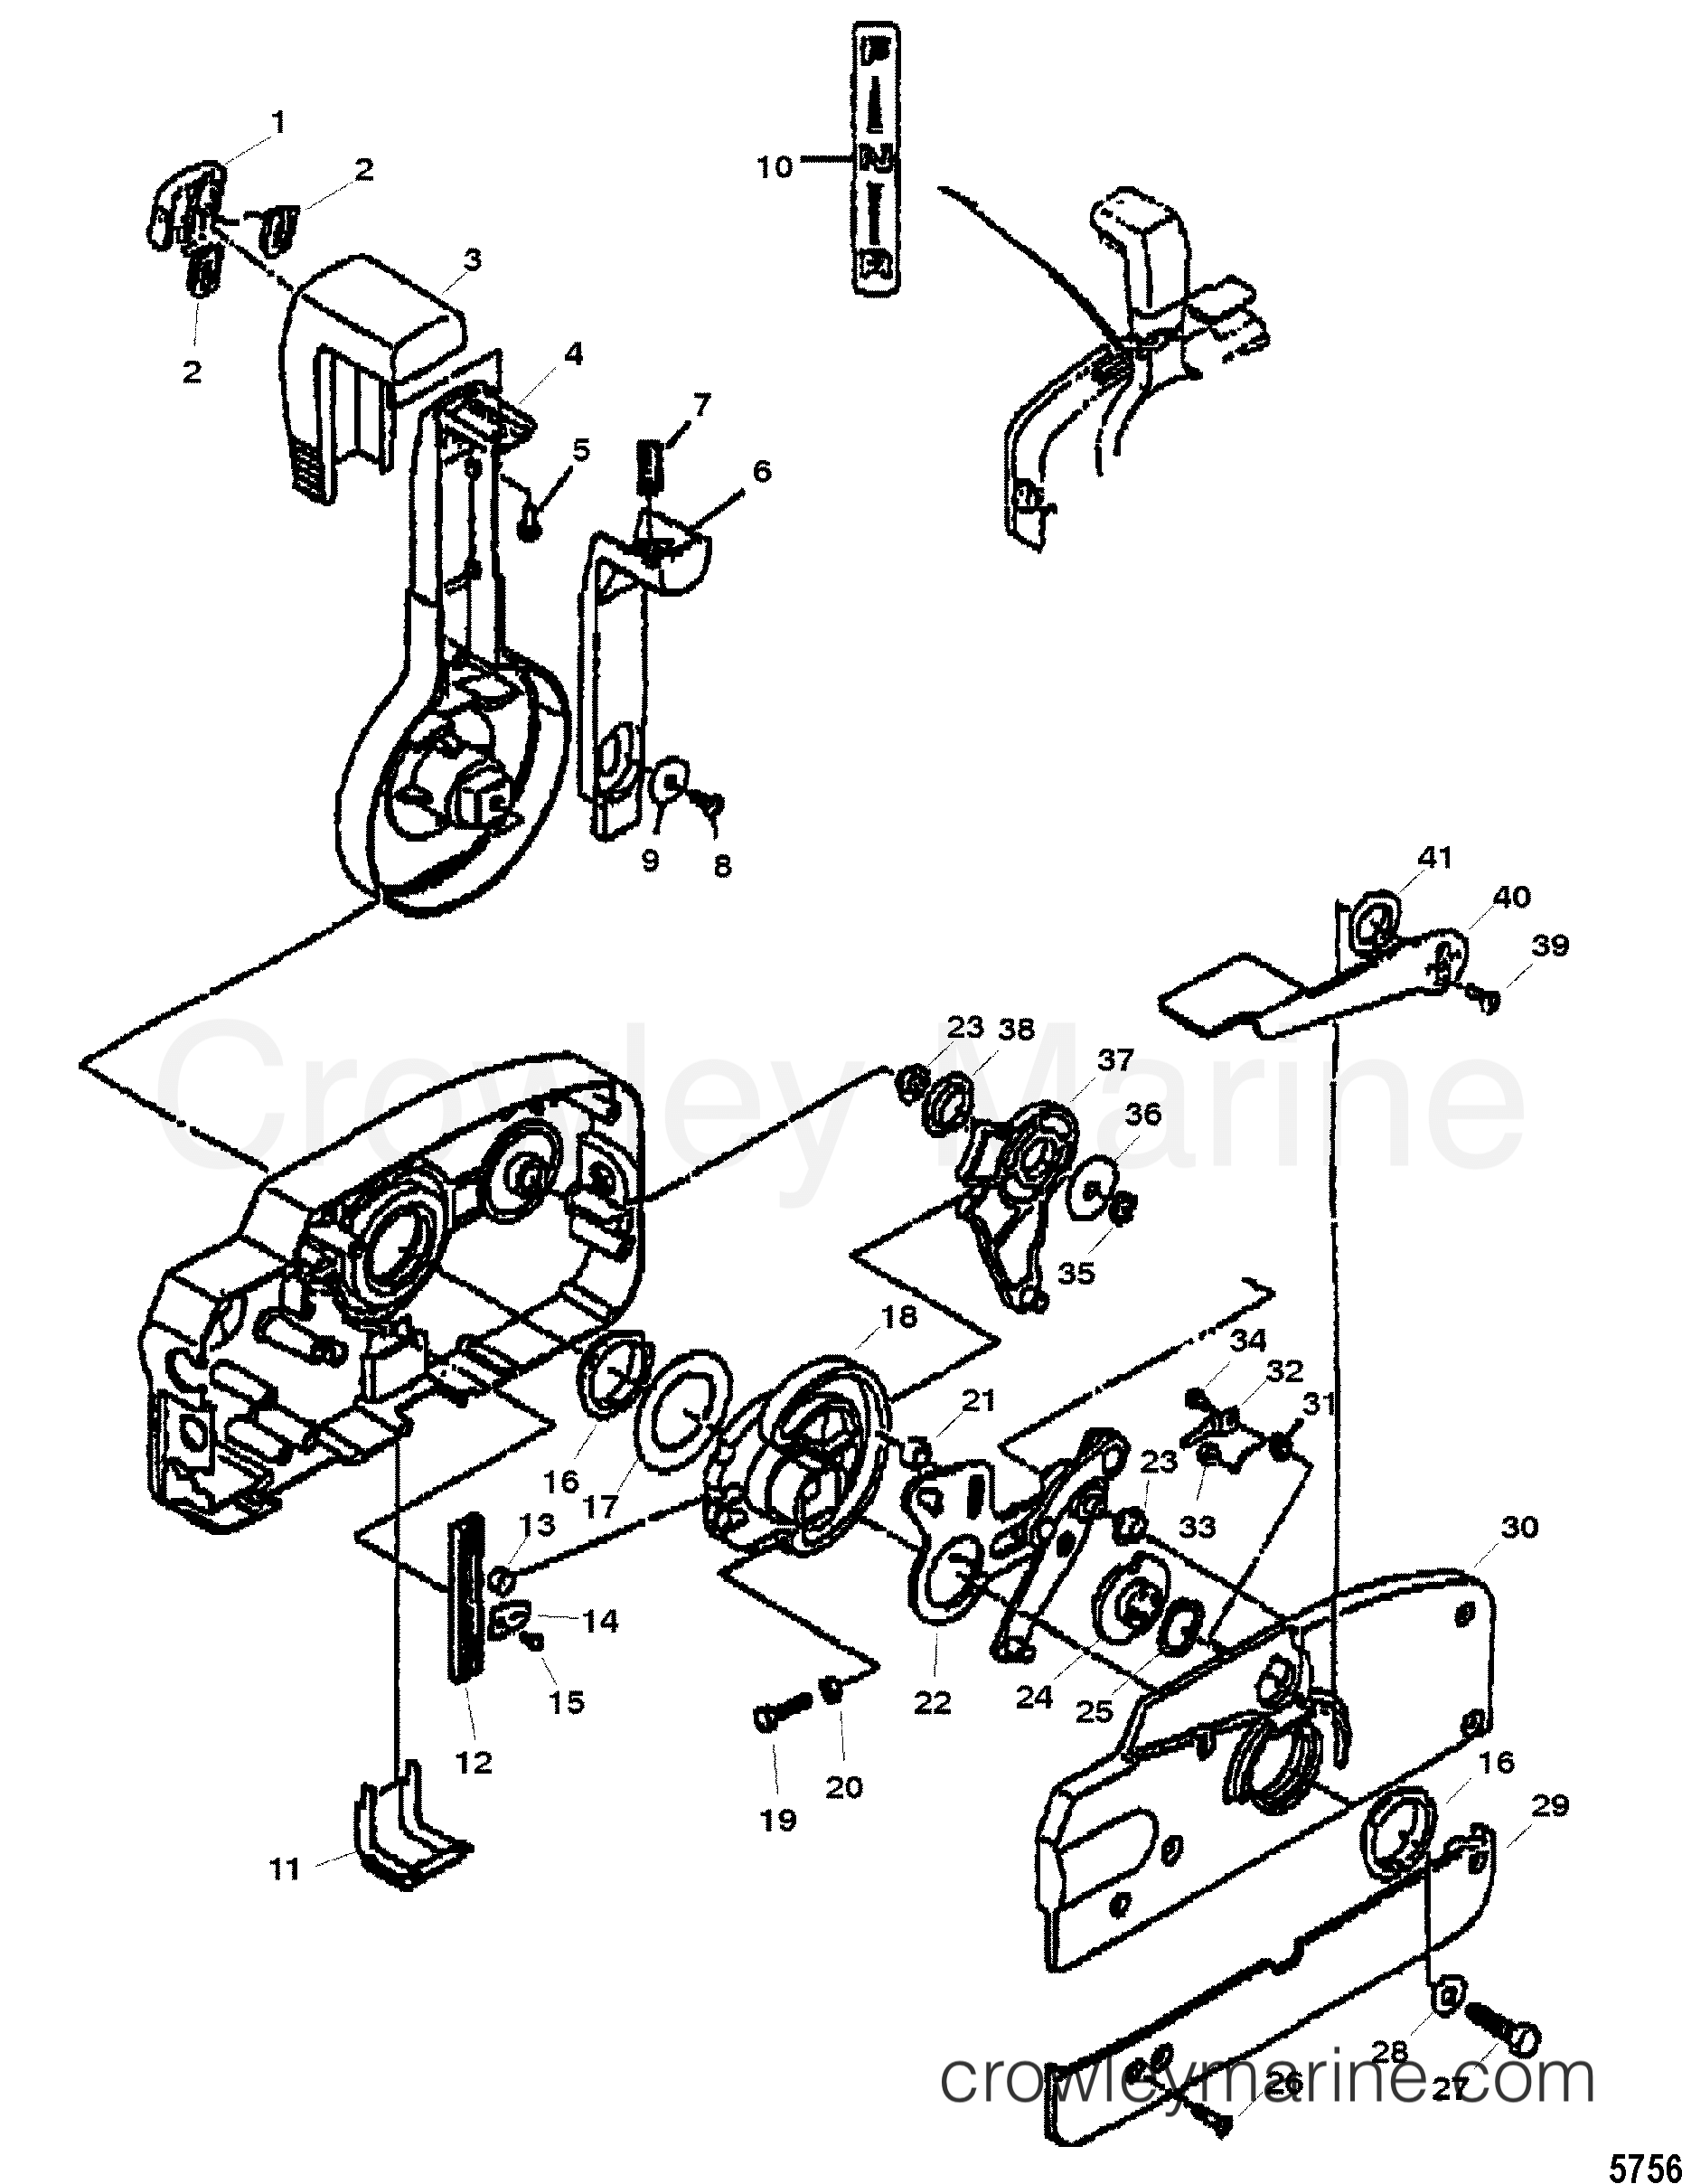 Quicksilver Remote Control Parts Diagram Engine Wiring